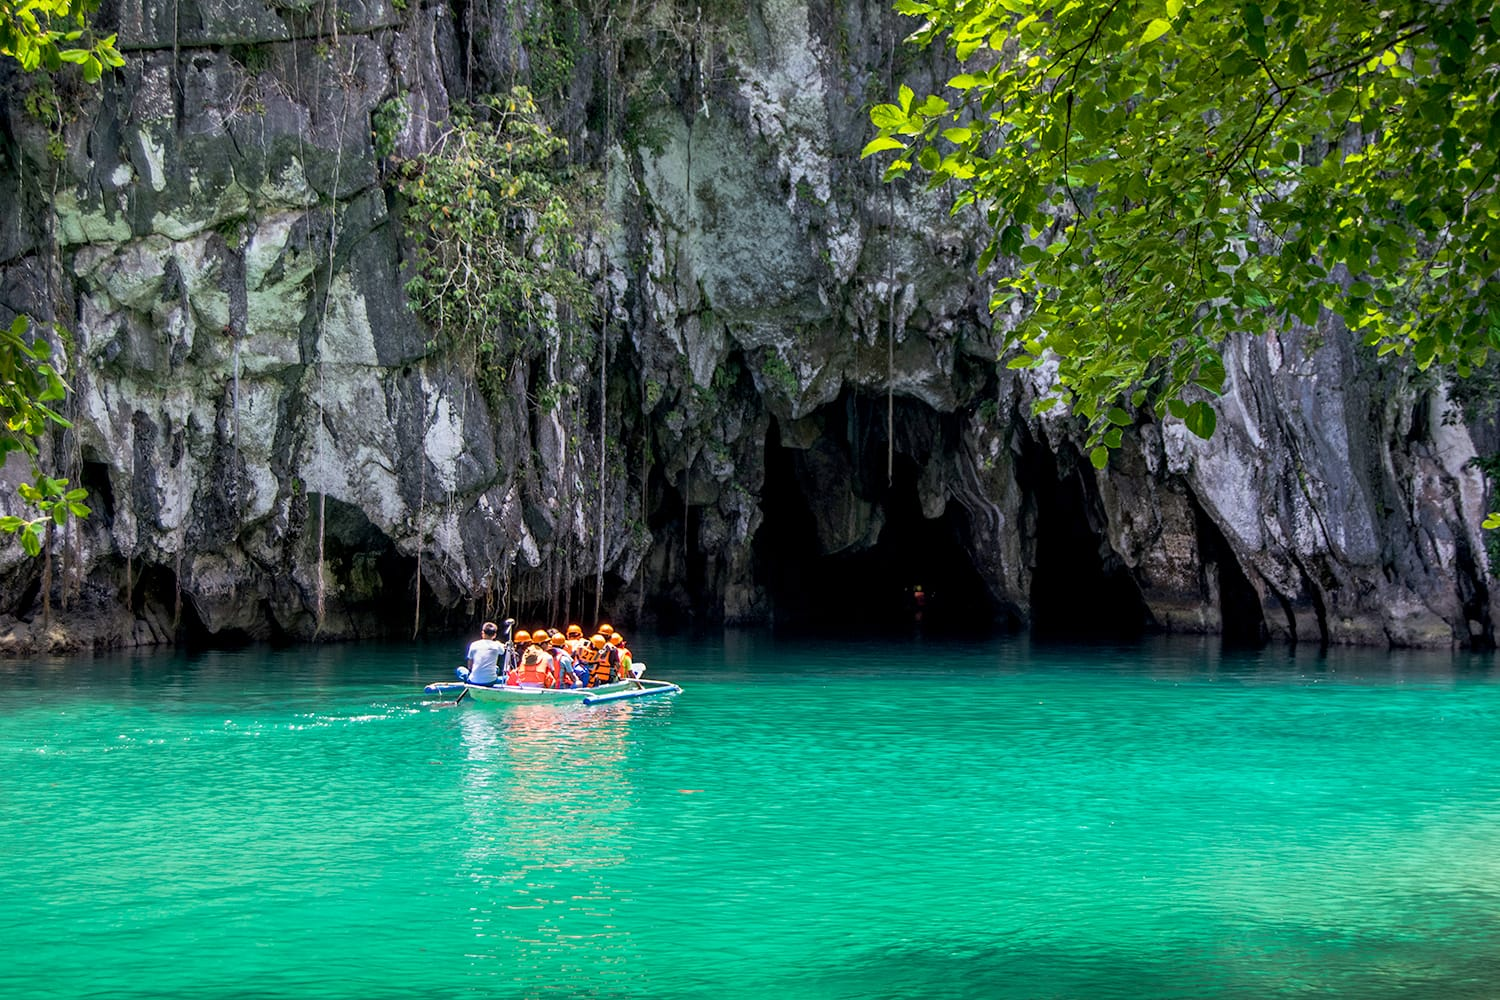 Puerto Princesa Subterranean River National Park in Palawan, Philippines